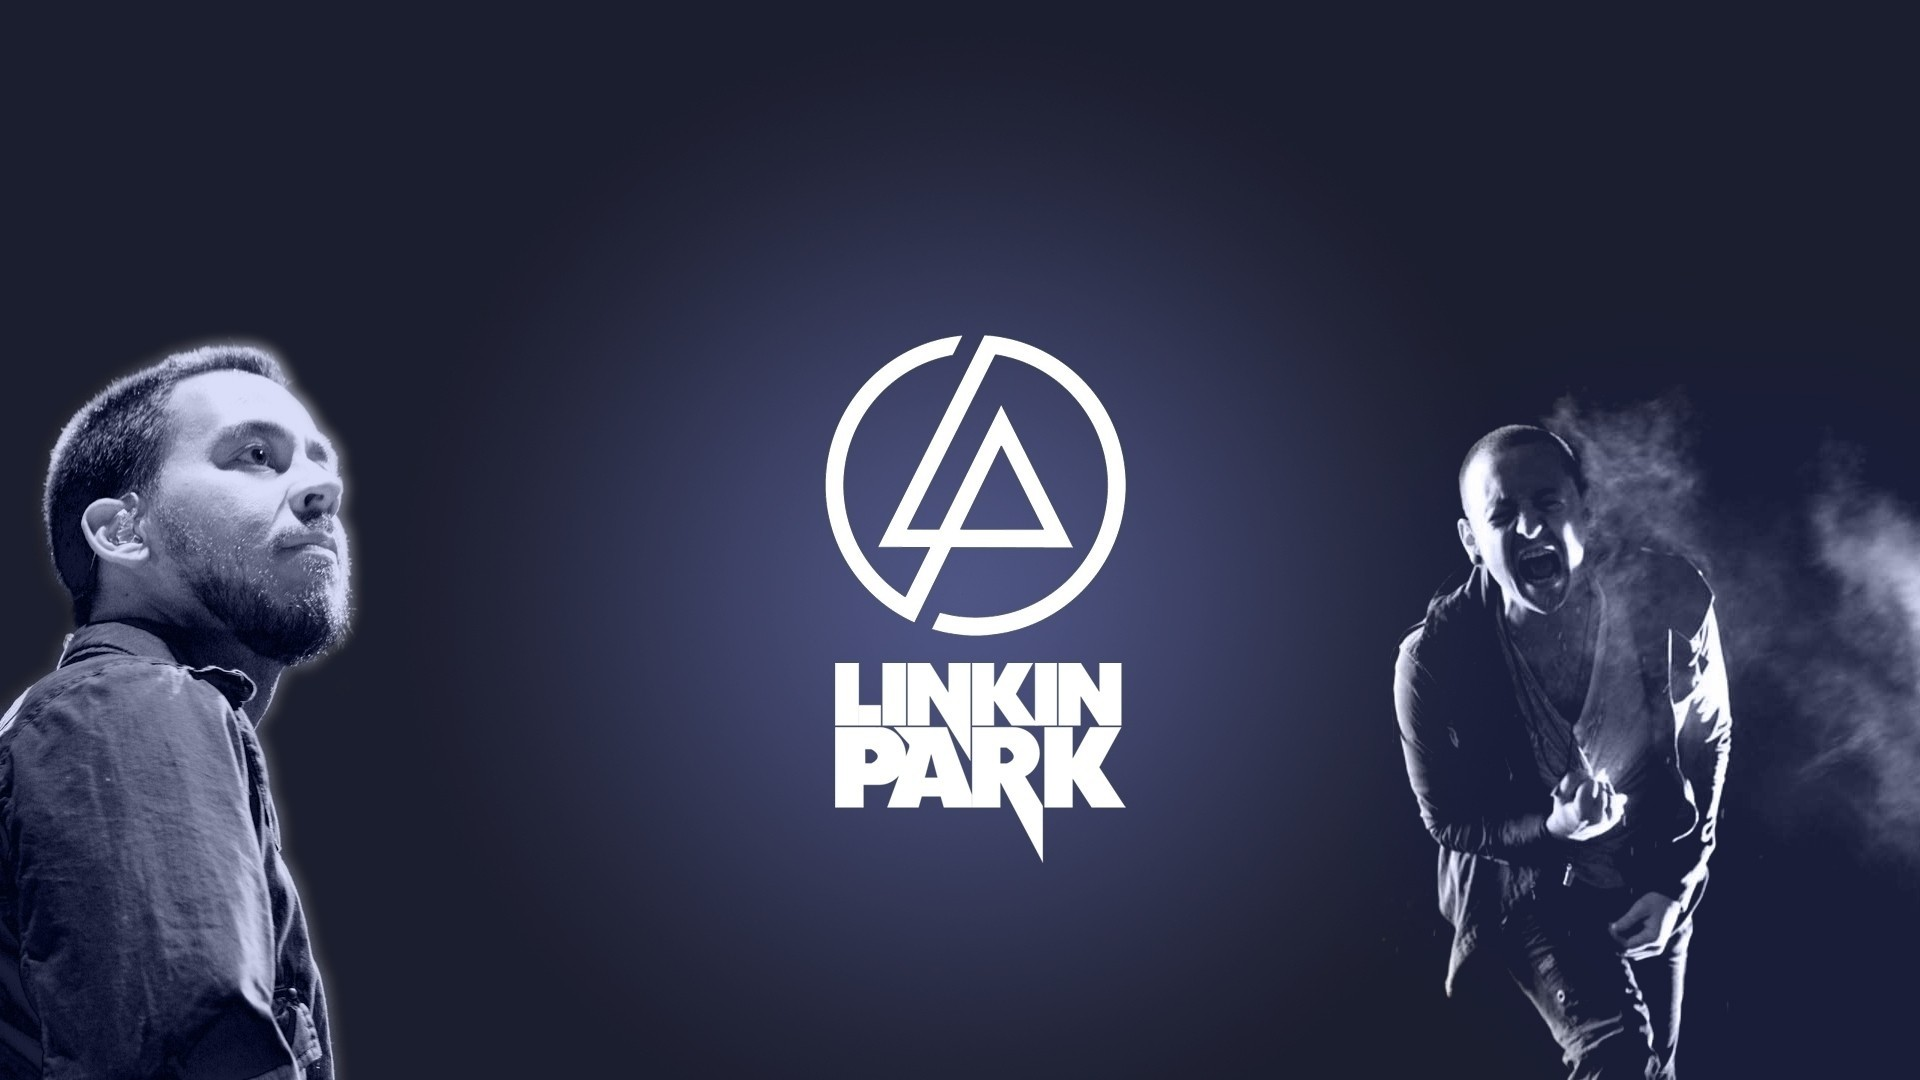 Linkin Park Wallpaper Hd 2017 Wallpapertag